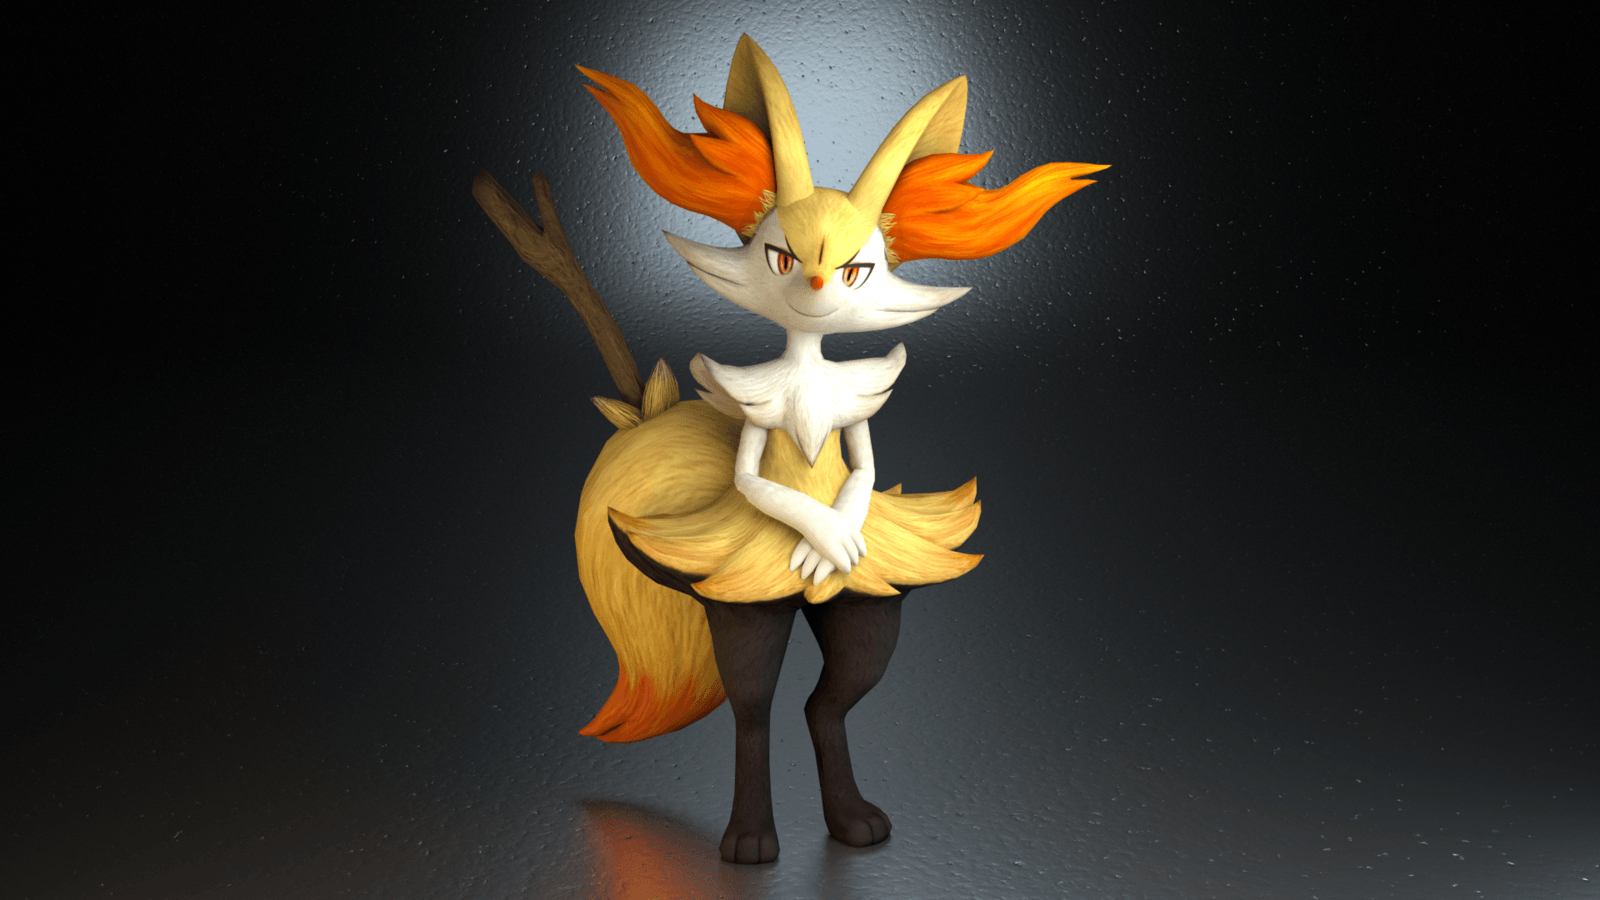 Pin by Hernan Tobar on Braixen (Pokemon) | Pinterest | Pokémon